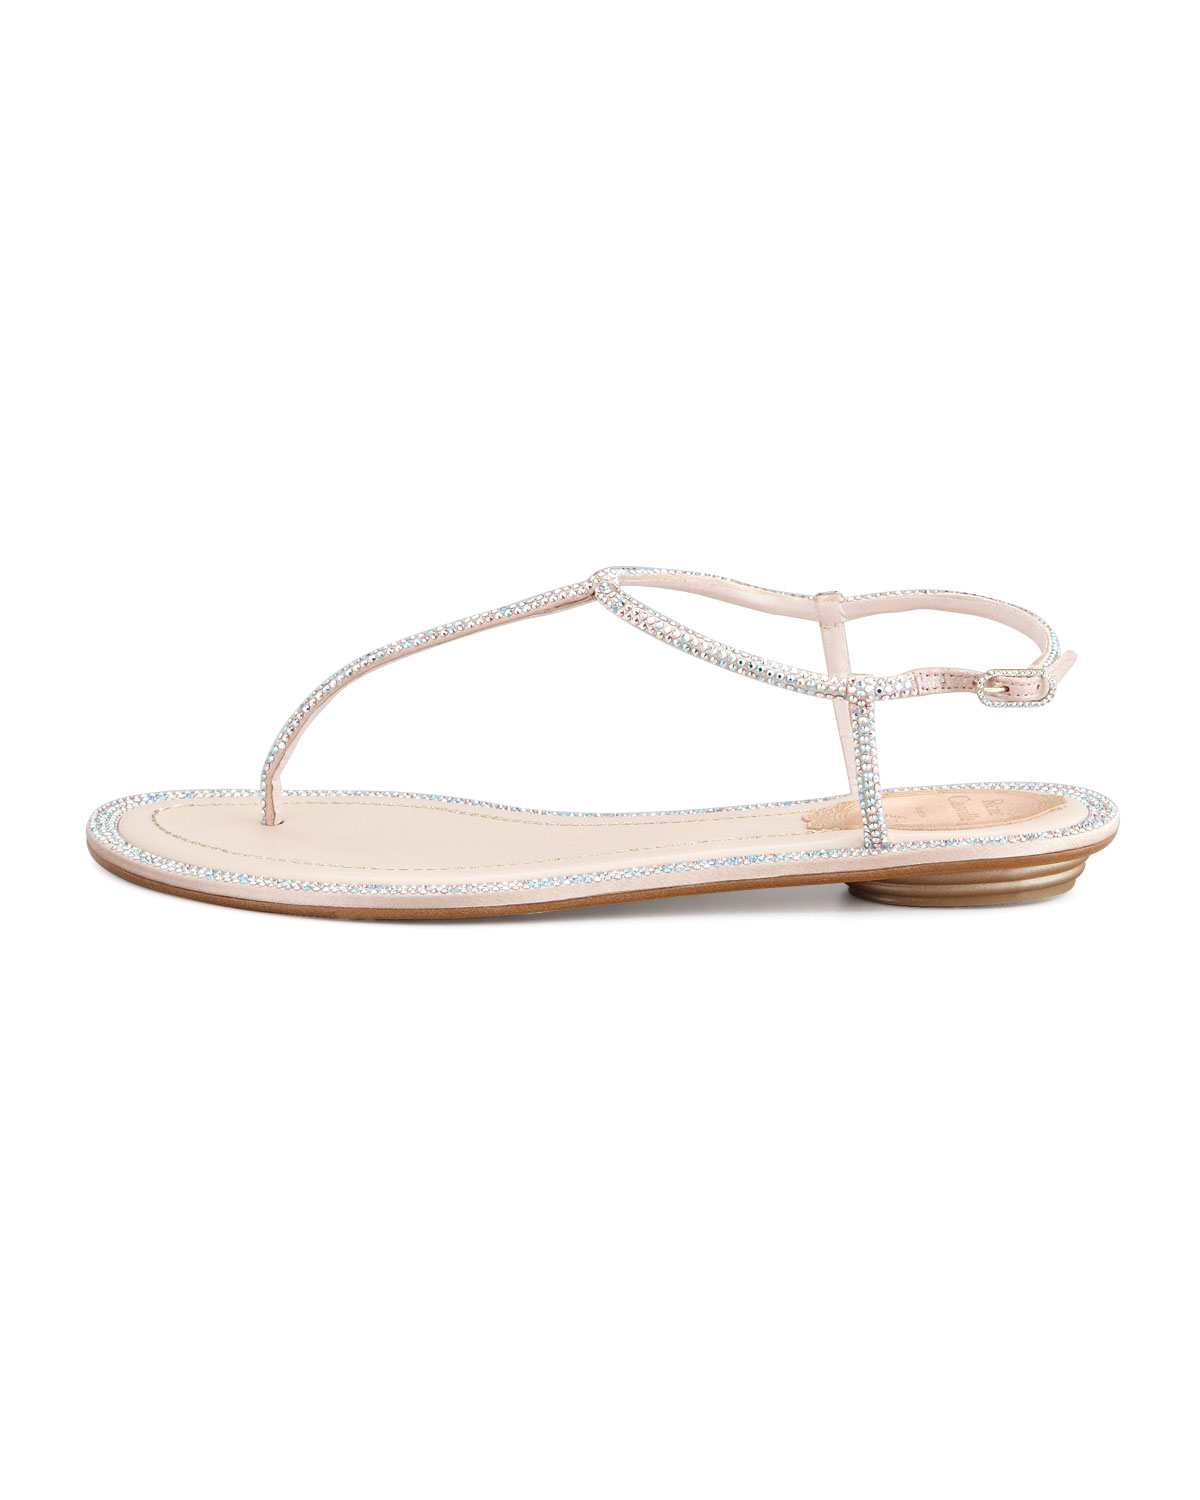 f4d693a8e1bb Lyst - Rene Caovilla Crystal Flat Thong Sandal Beige in Natural